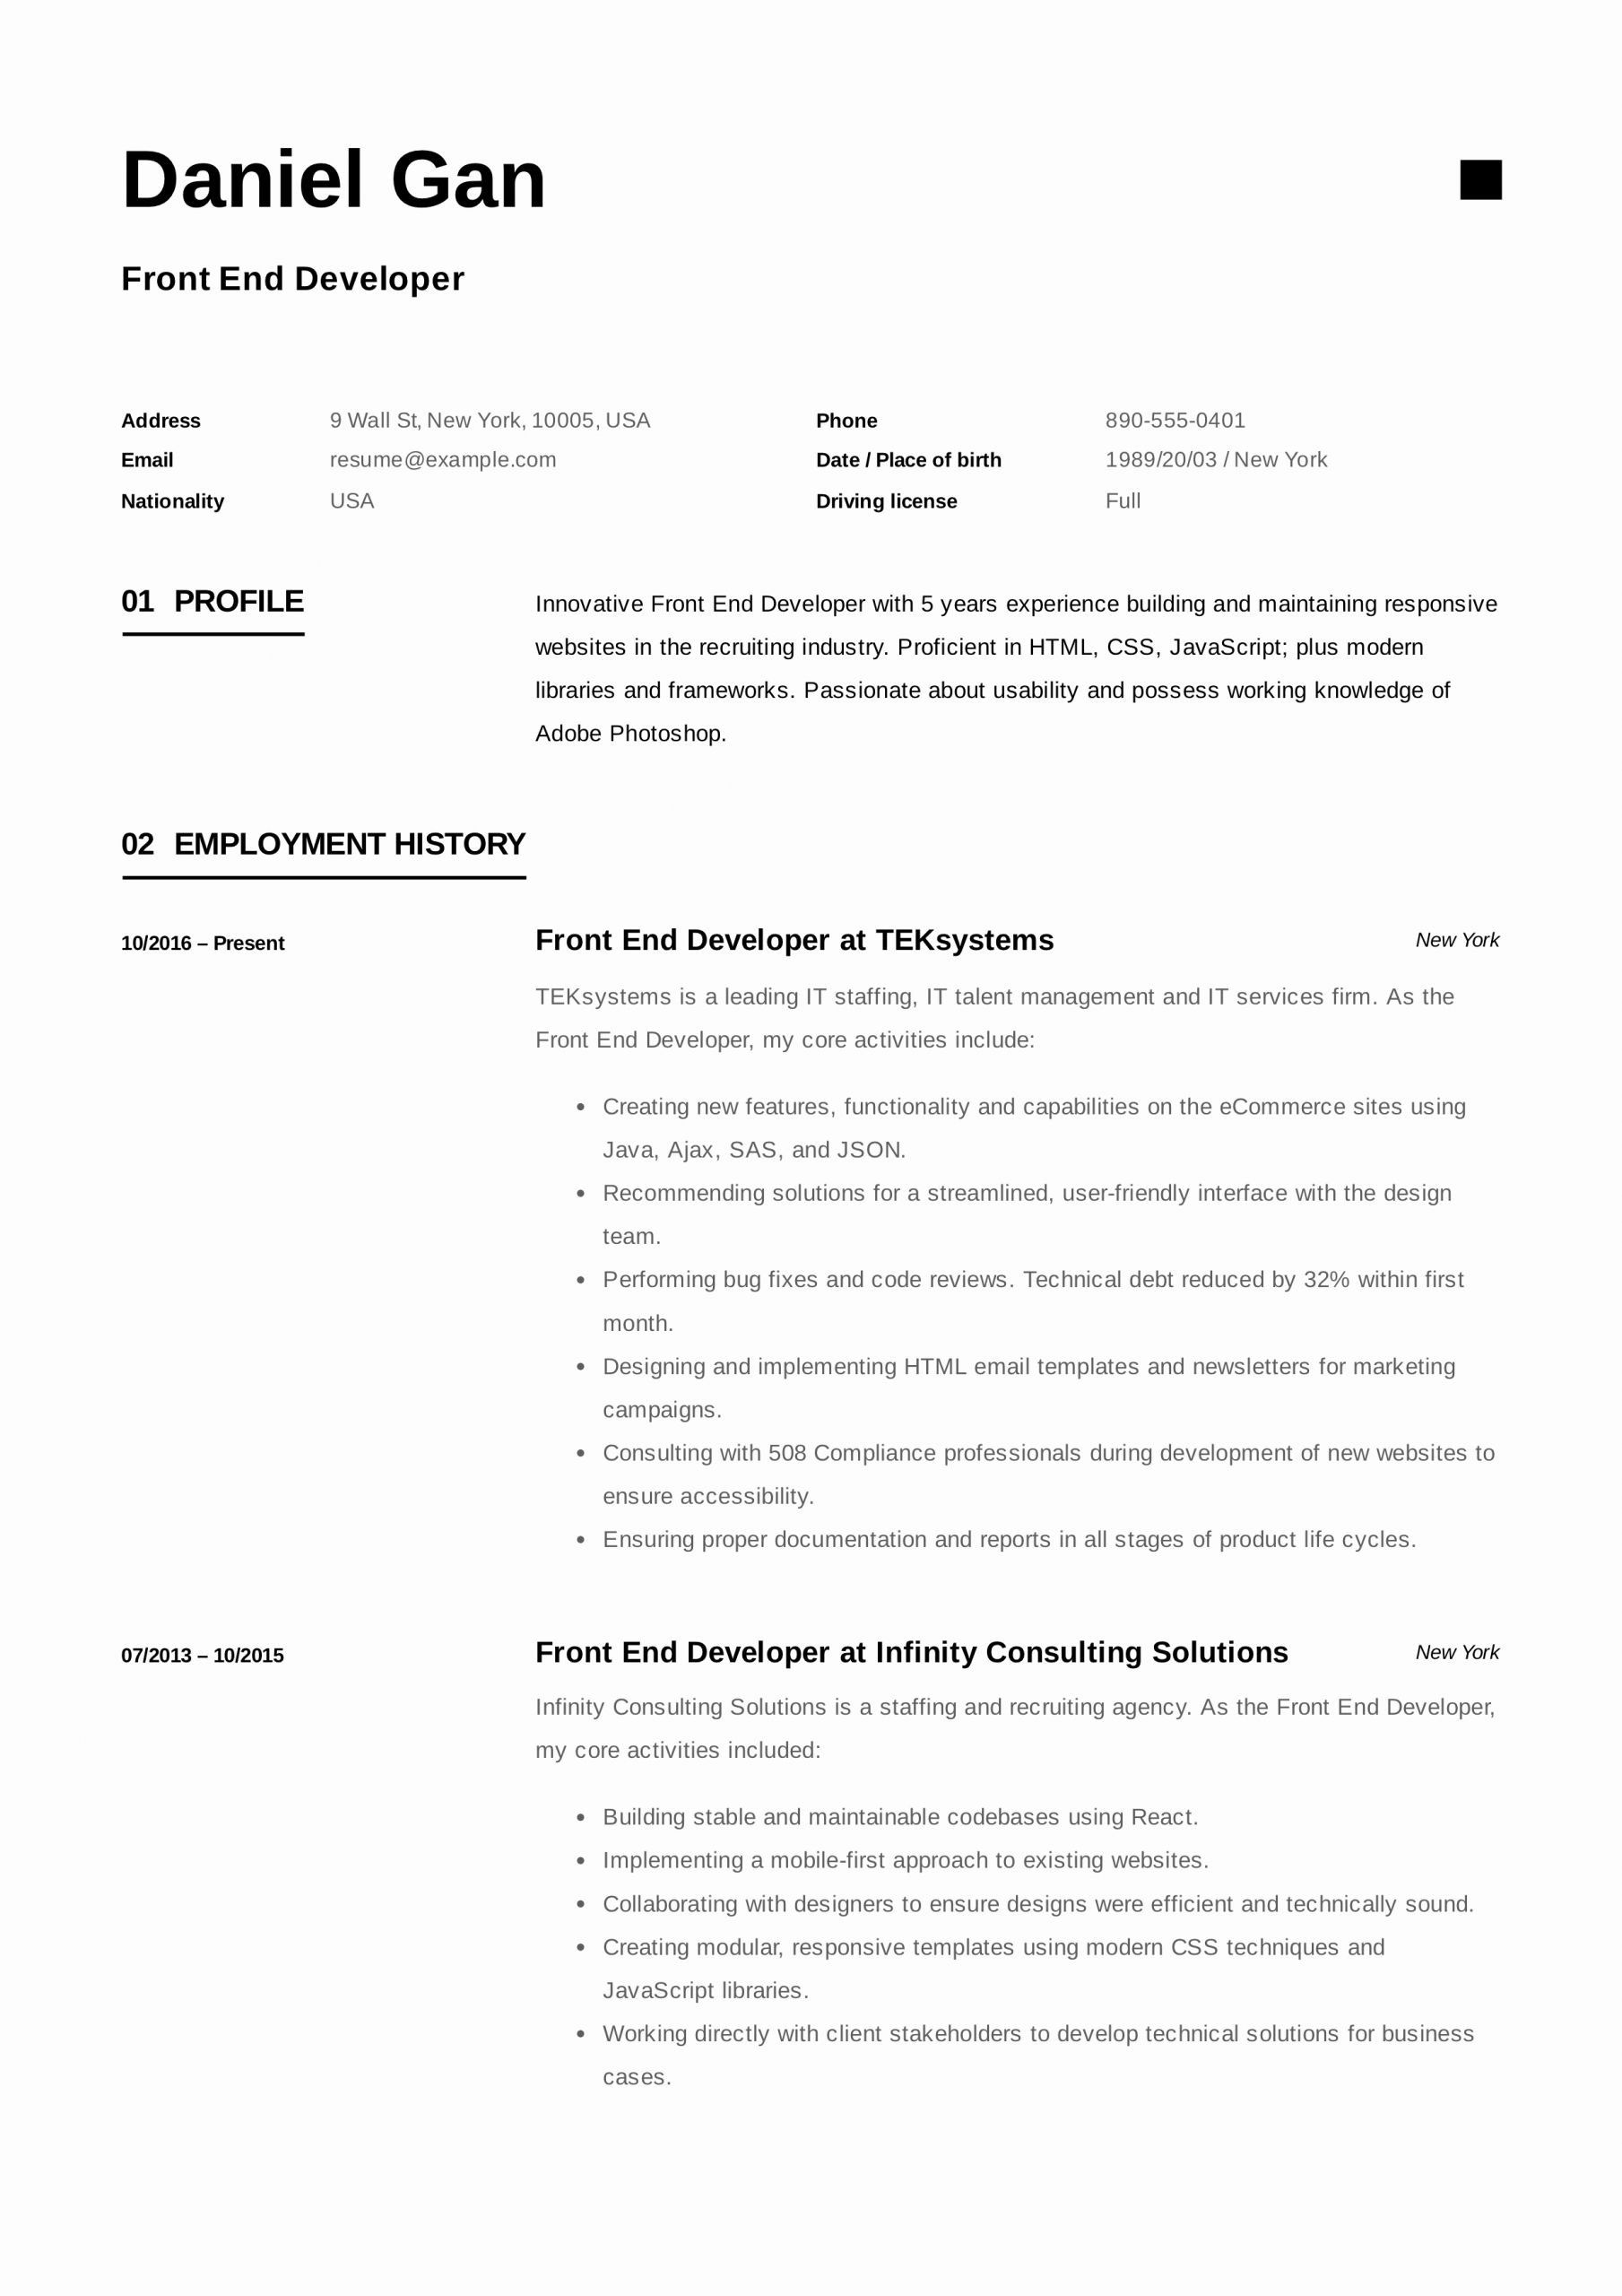 25 Front End Developer Resume Template in 2020 Resume